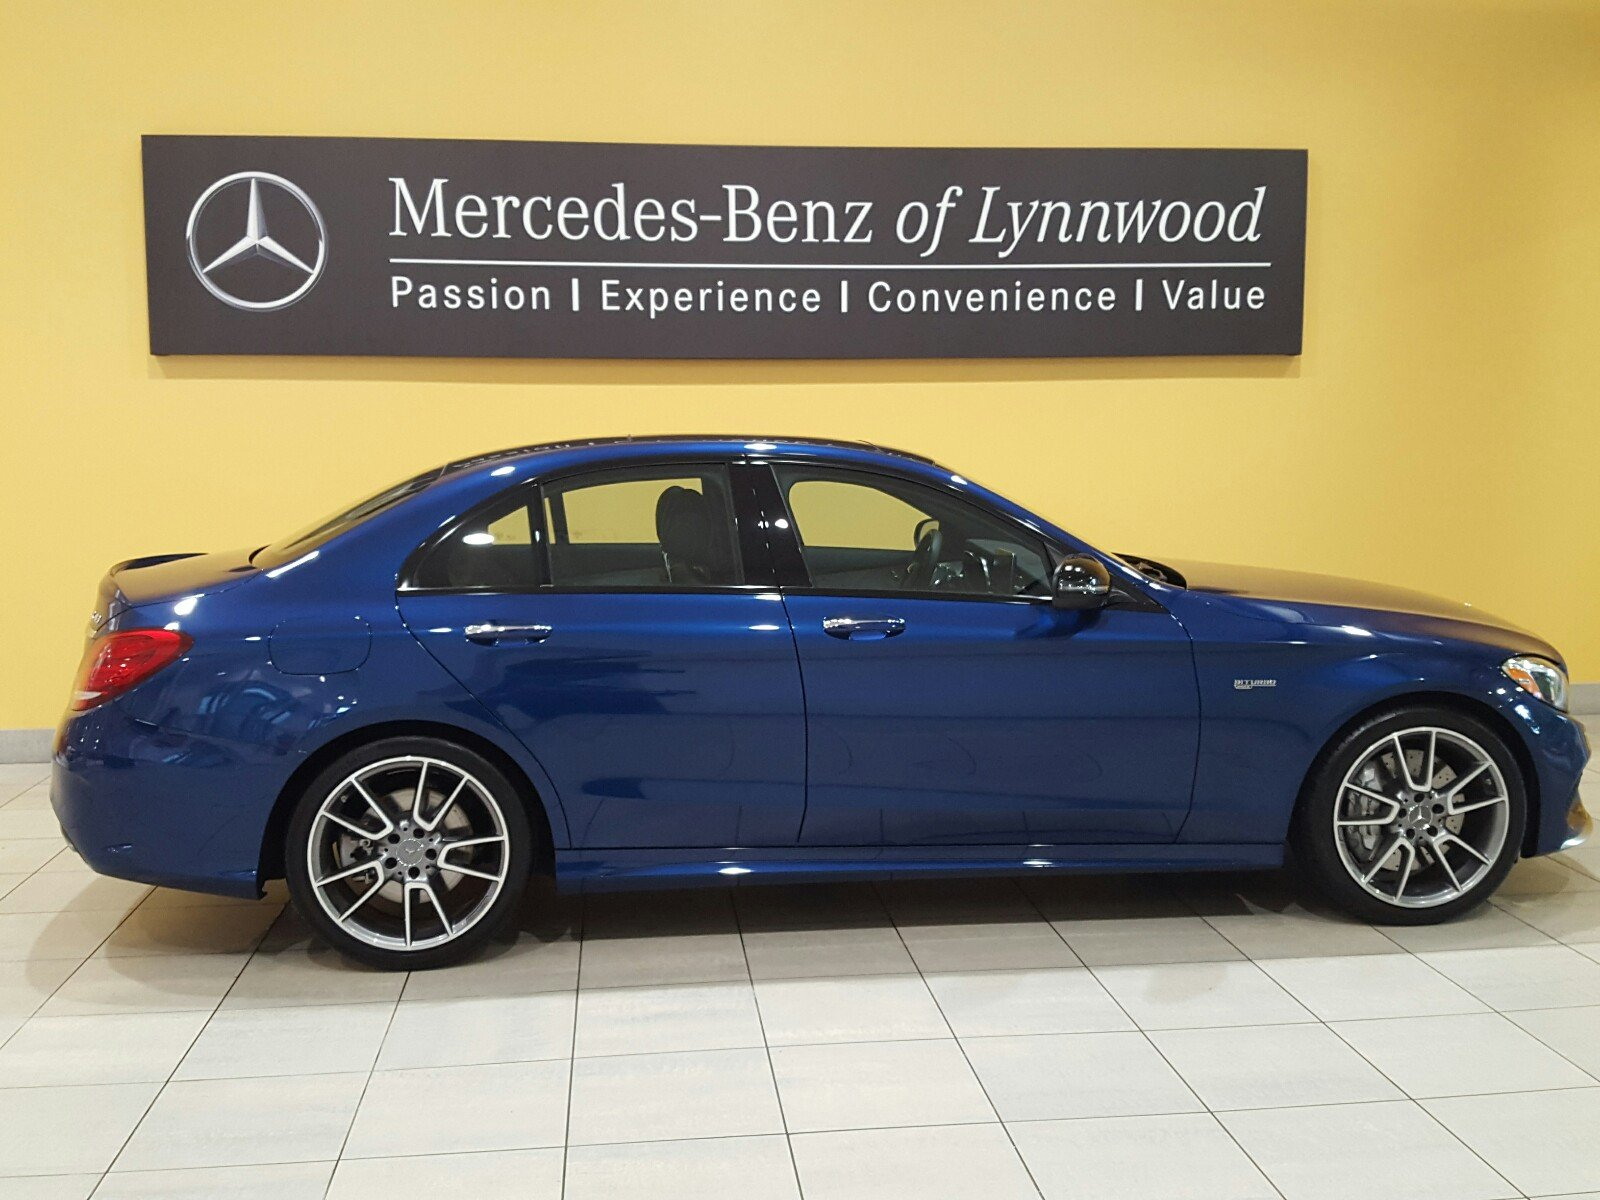 Pre owned 2018 mercedes benz c class amg c 43 4matic for Mercedes benz c class pre owned